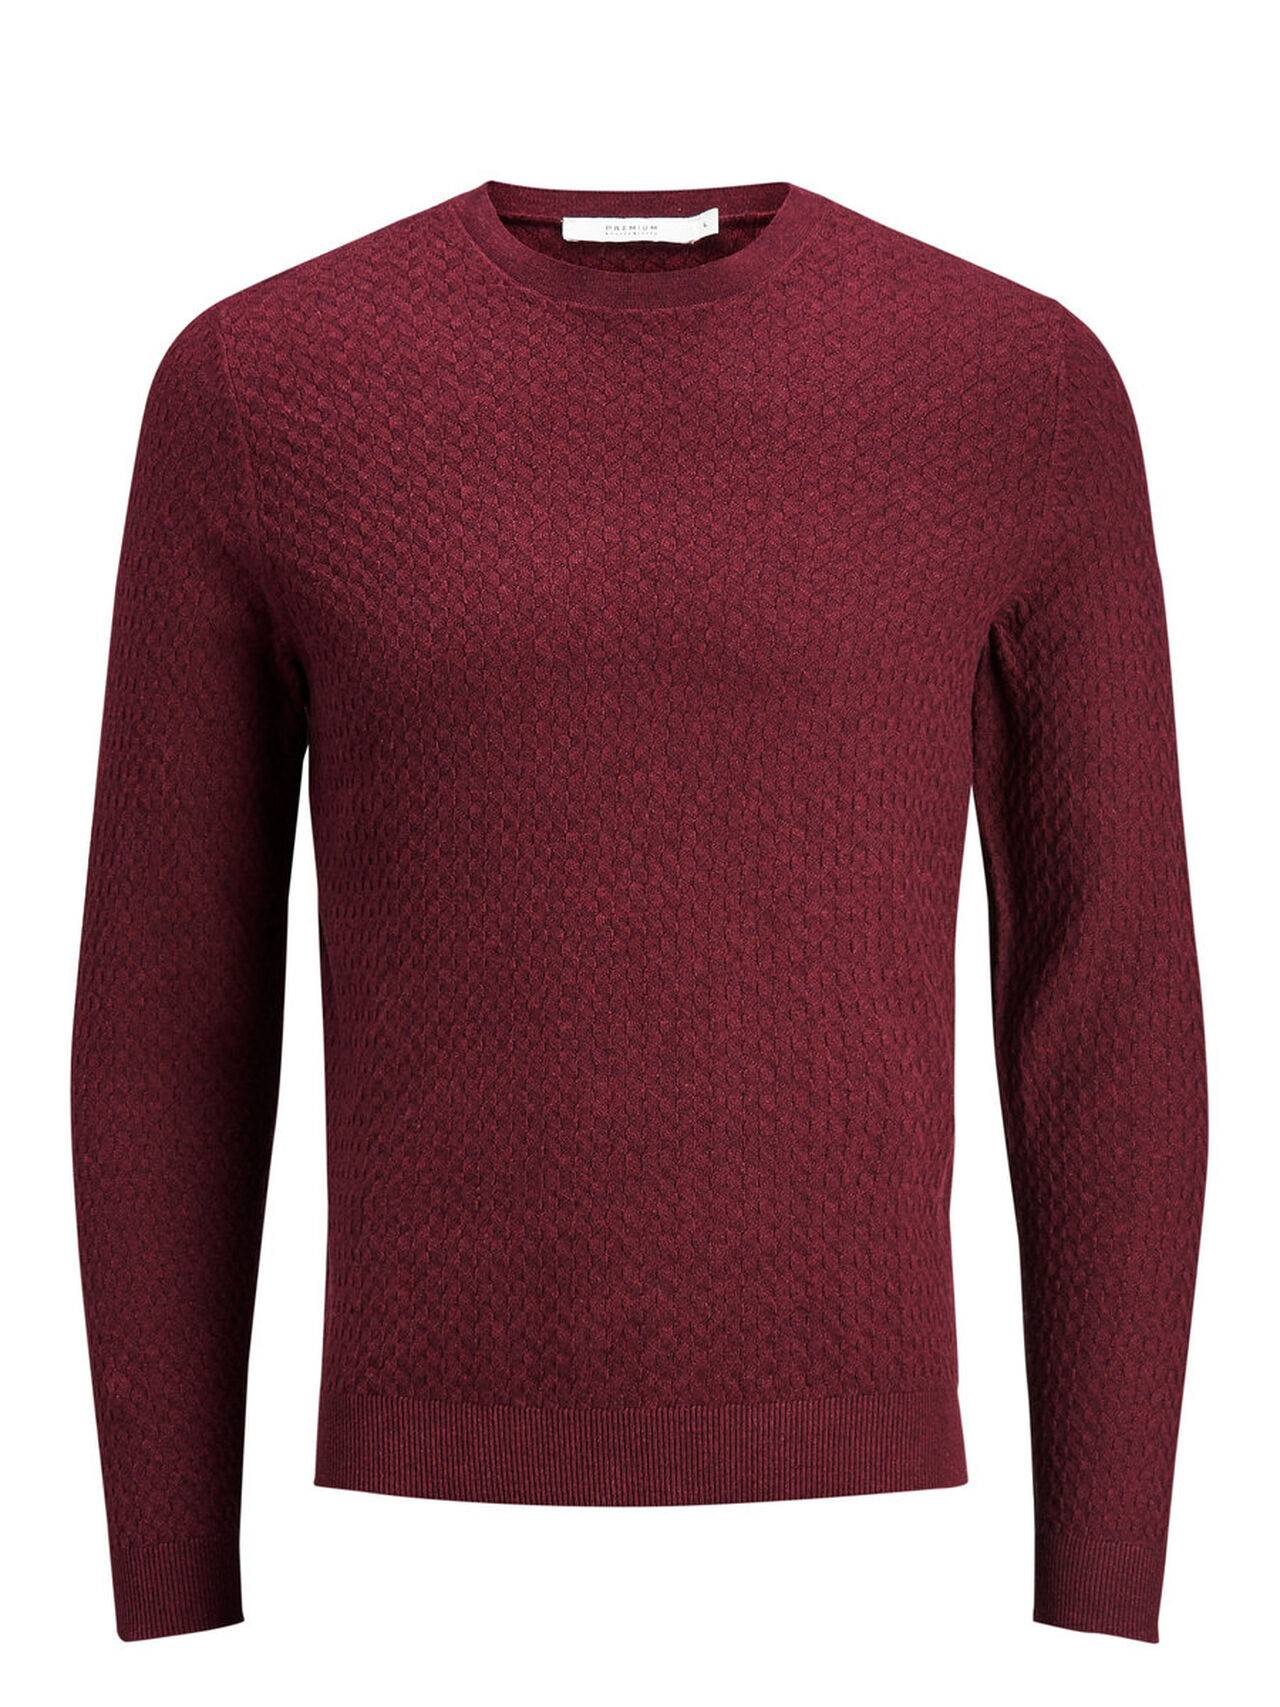 JACK & JONES Classic Knitted Pullover Men Red TawnyPort